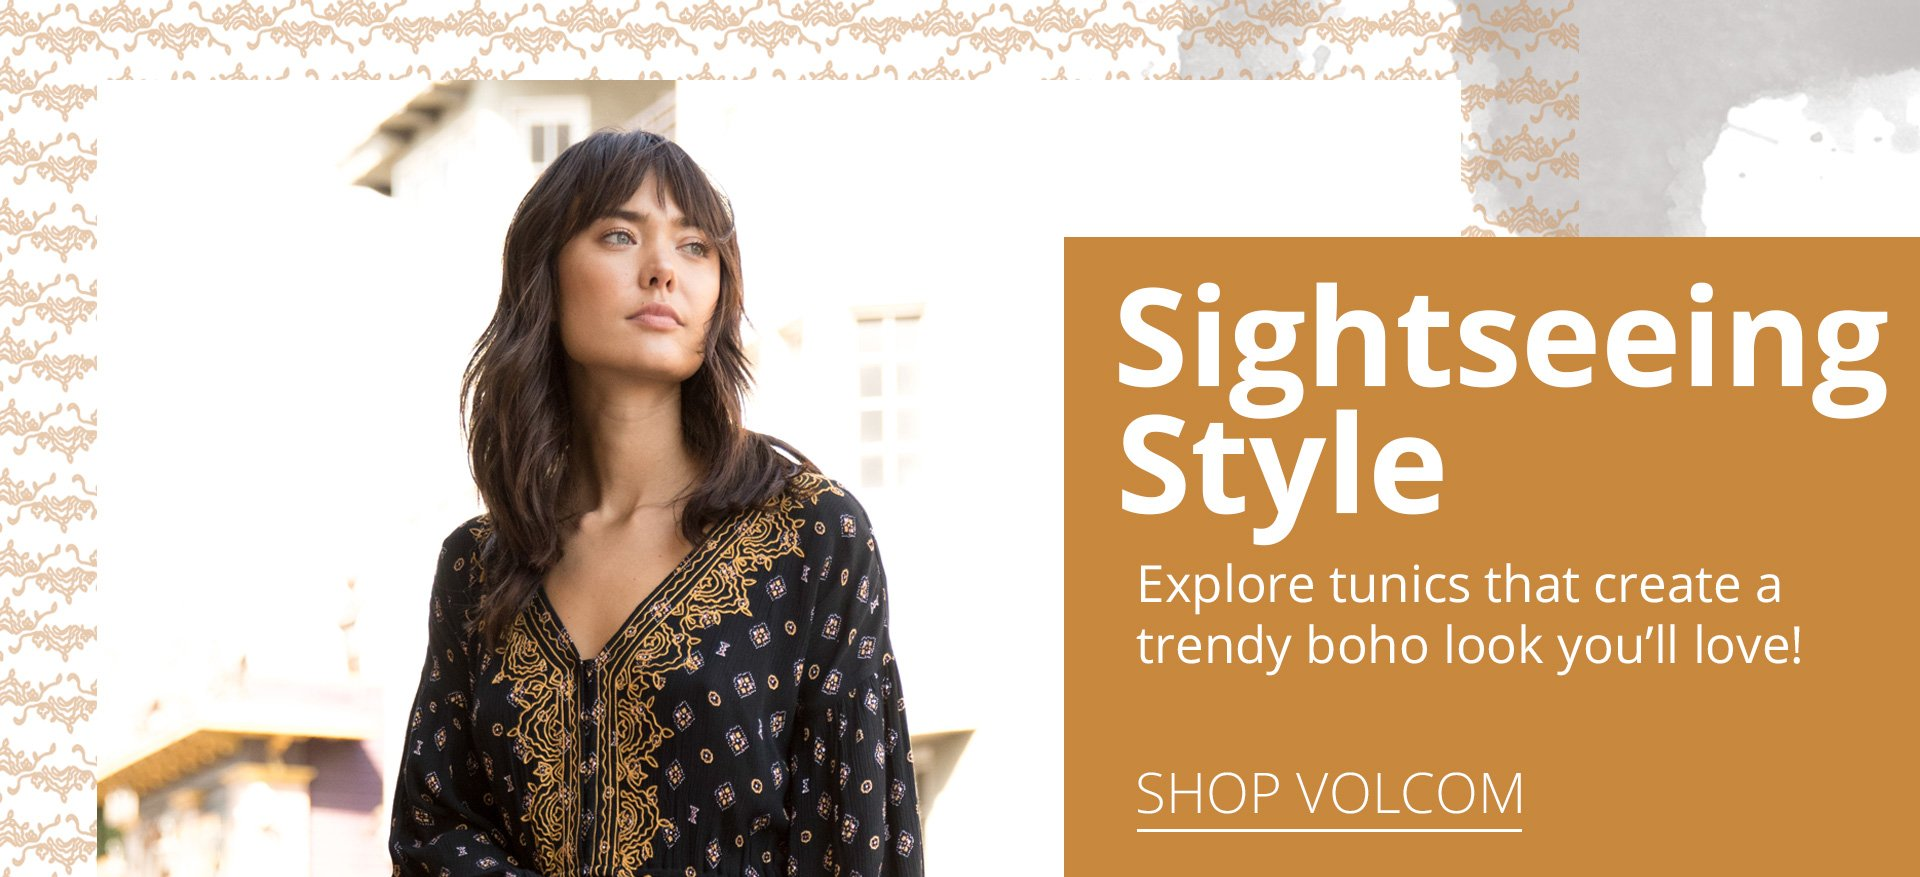 Sightseeing style. Explore tunics that create a trendy boho look you'll love.